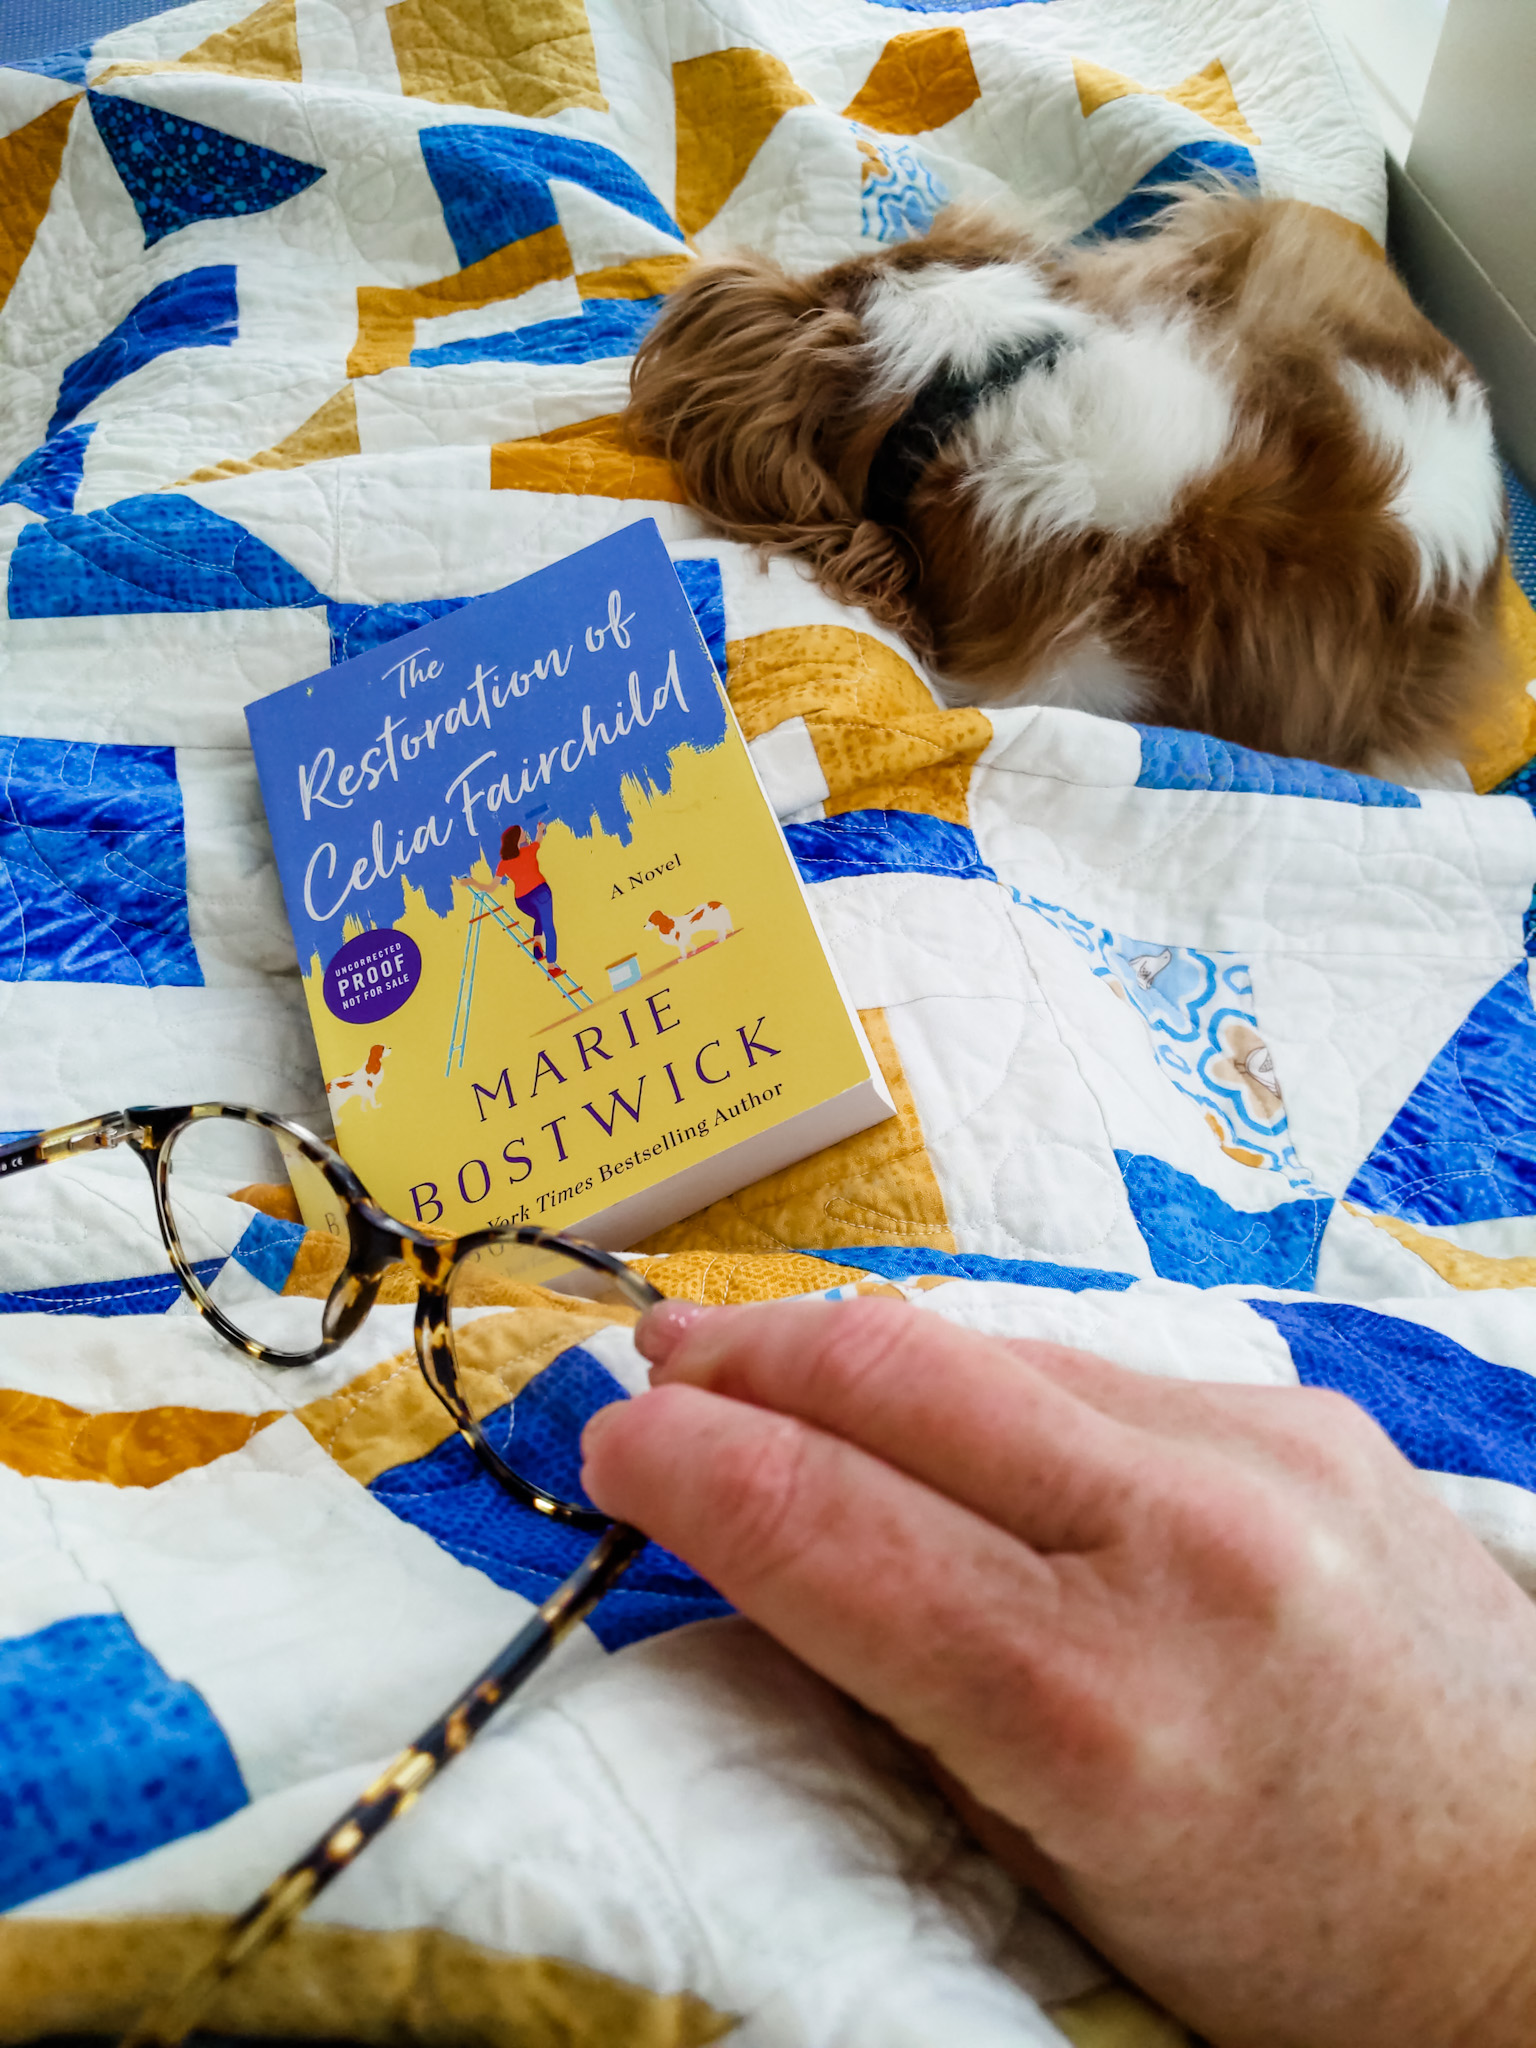 A copy of The Restoration of Celia Fairchild on a quilt, with Marie's sleeping dog in the background.